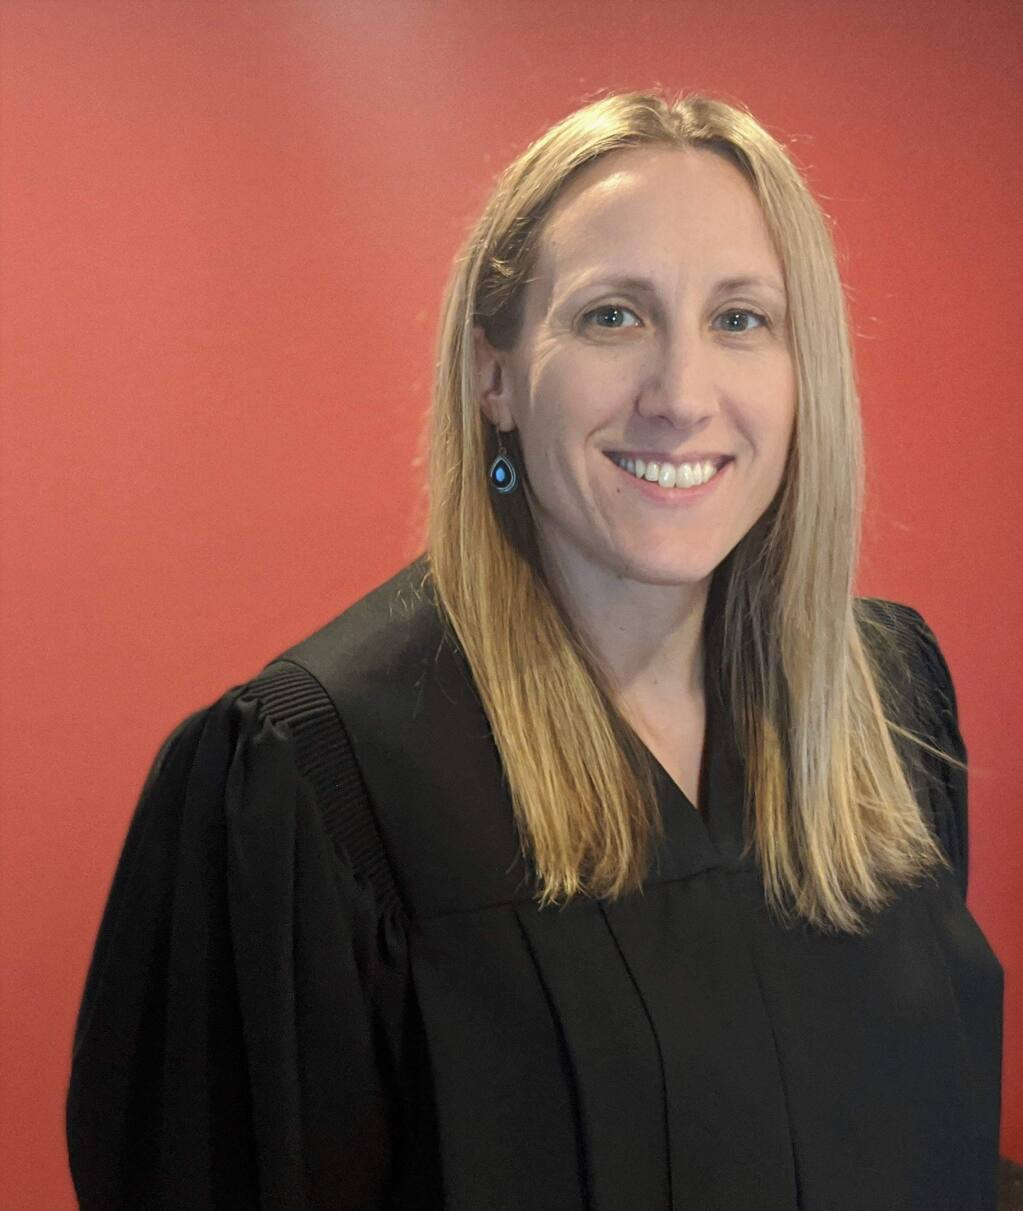 Katie Boriolo, 38, workers' compensation judge, state of California, is a 2020 Forty Under 40 winner. (courtesy photo)